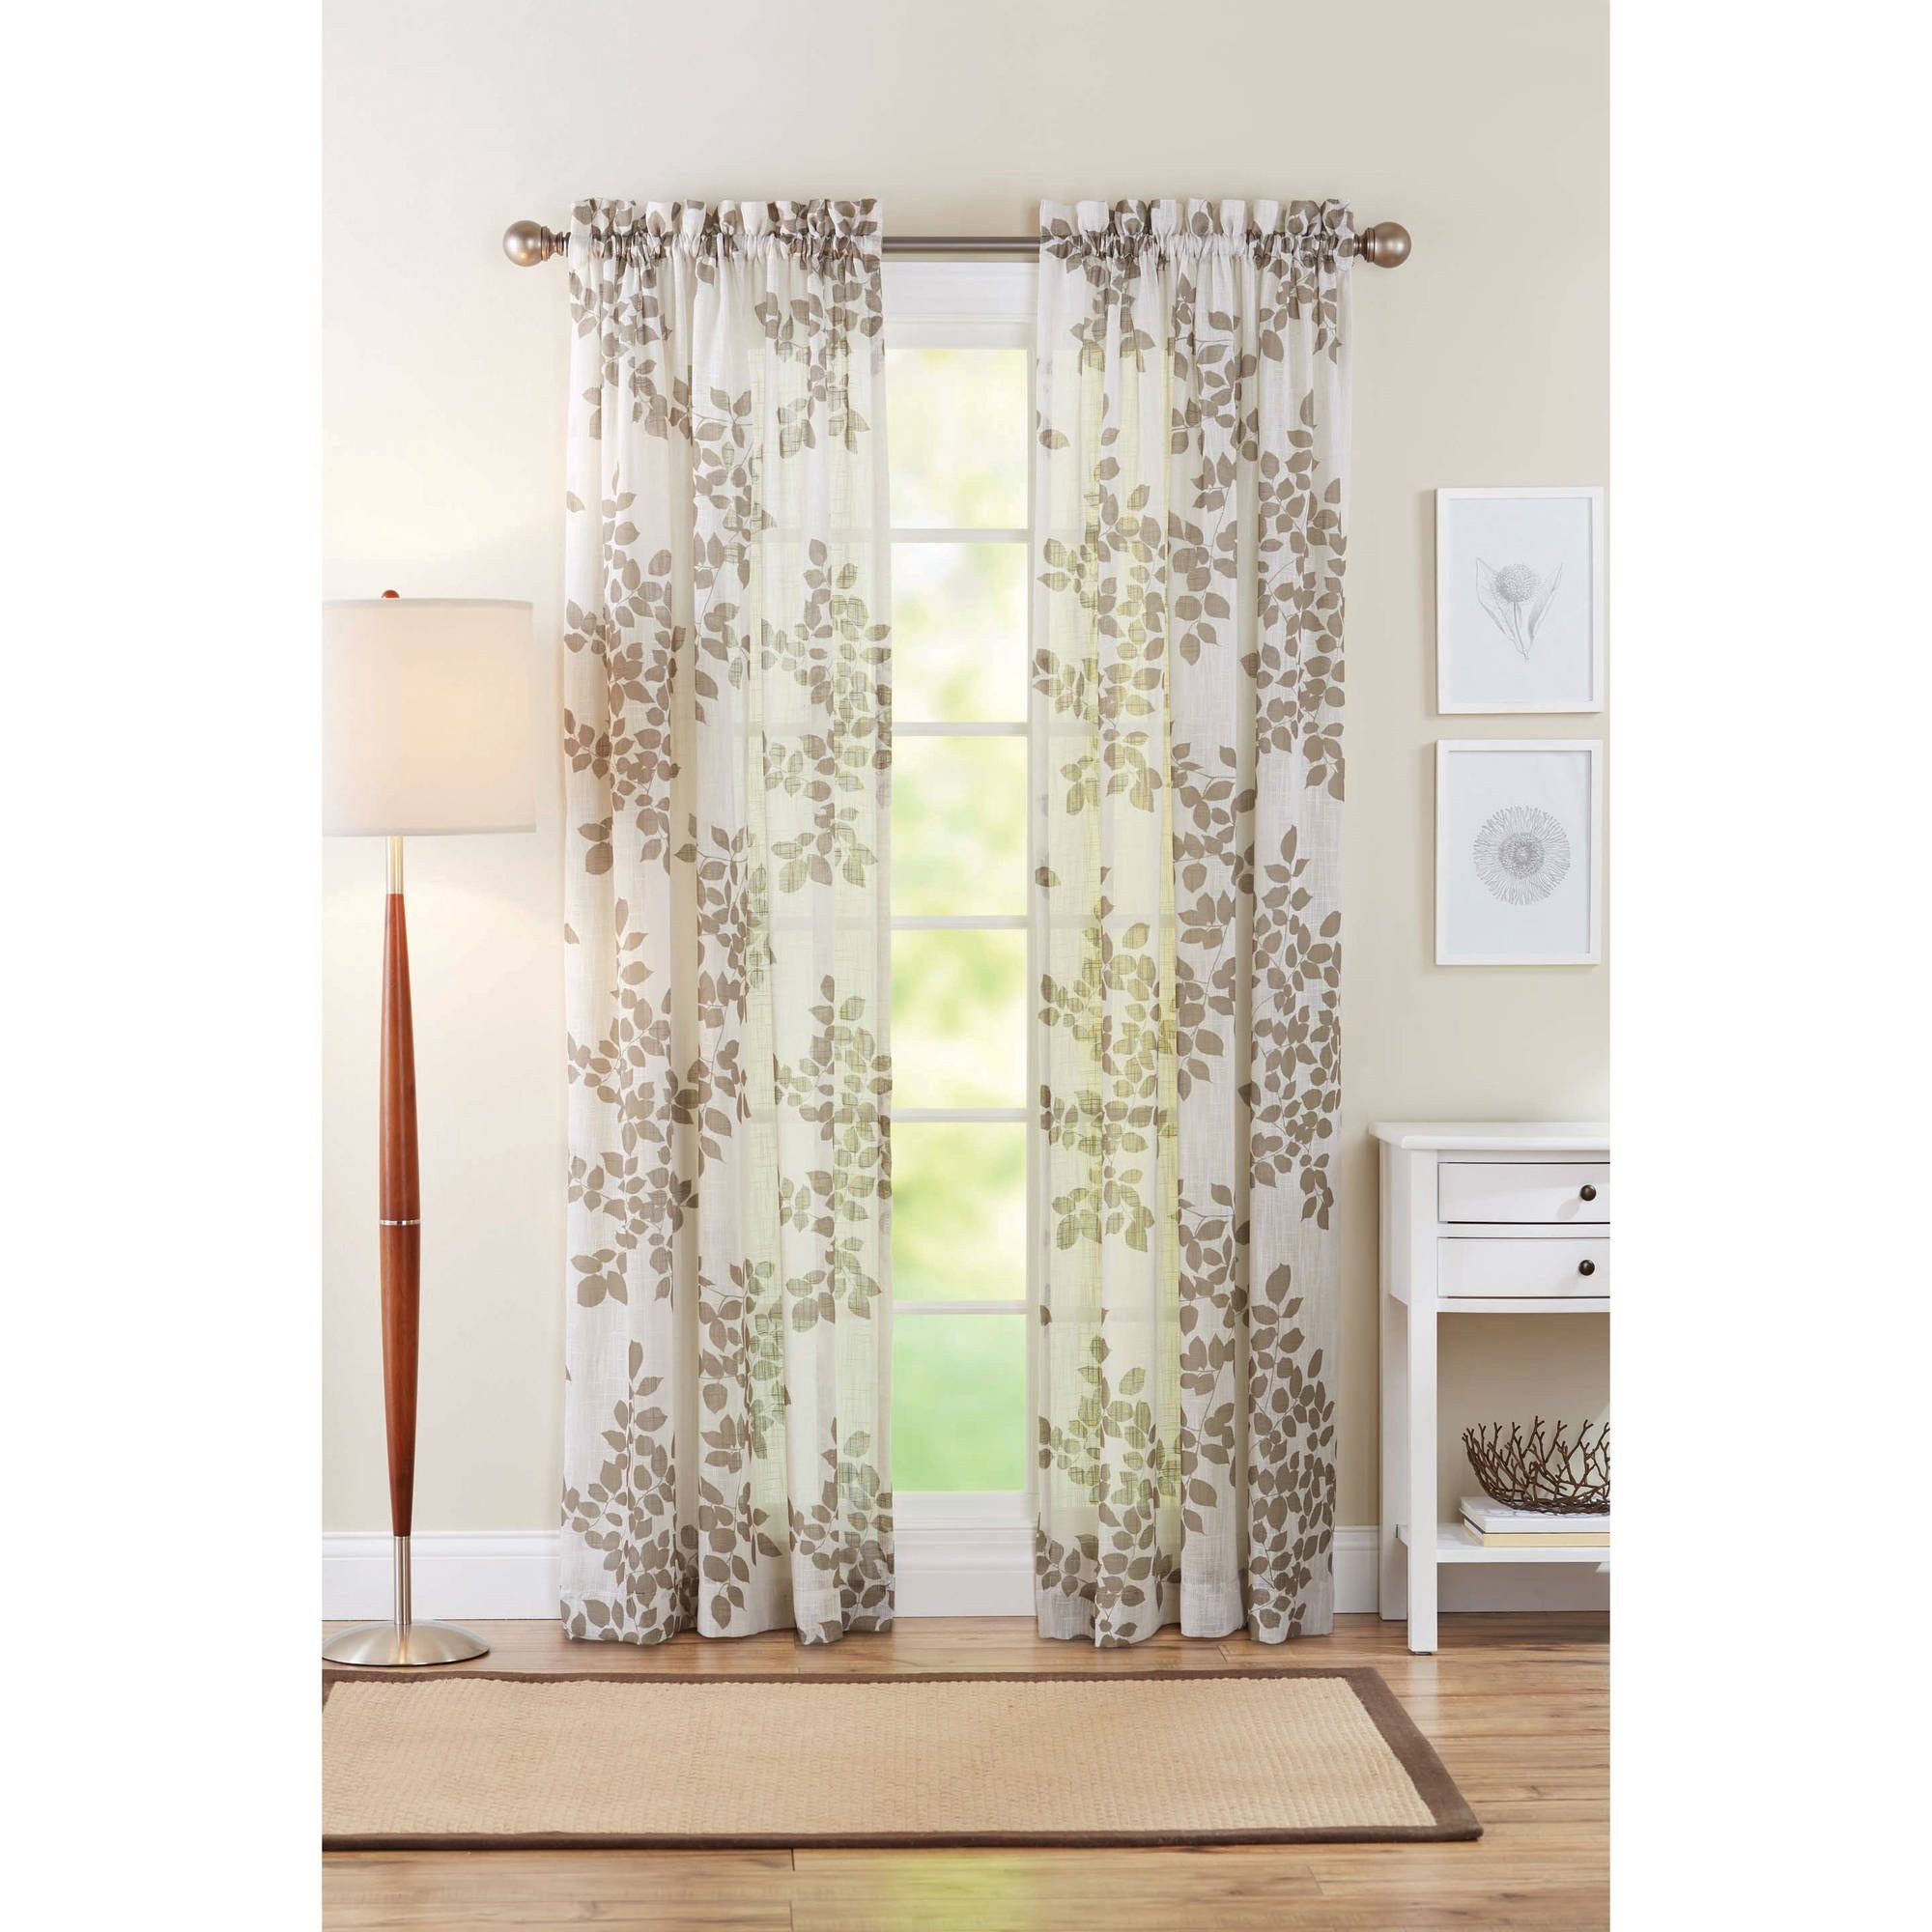 Bedroom Curtains at Walmart Elegant Home A P A R T M E N T Life